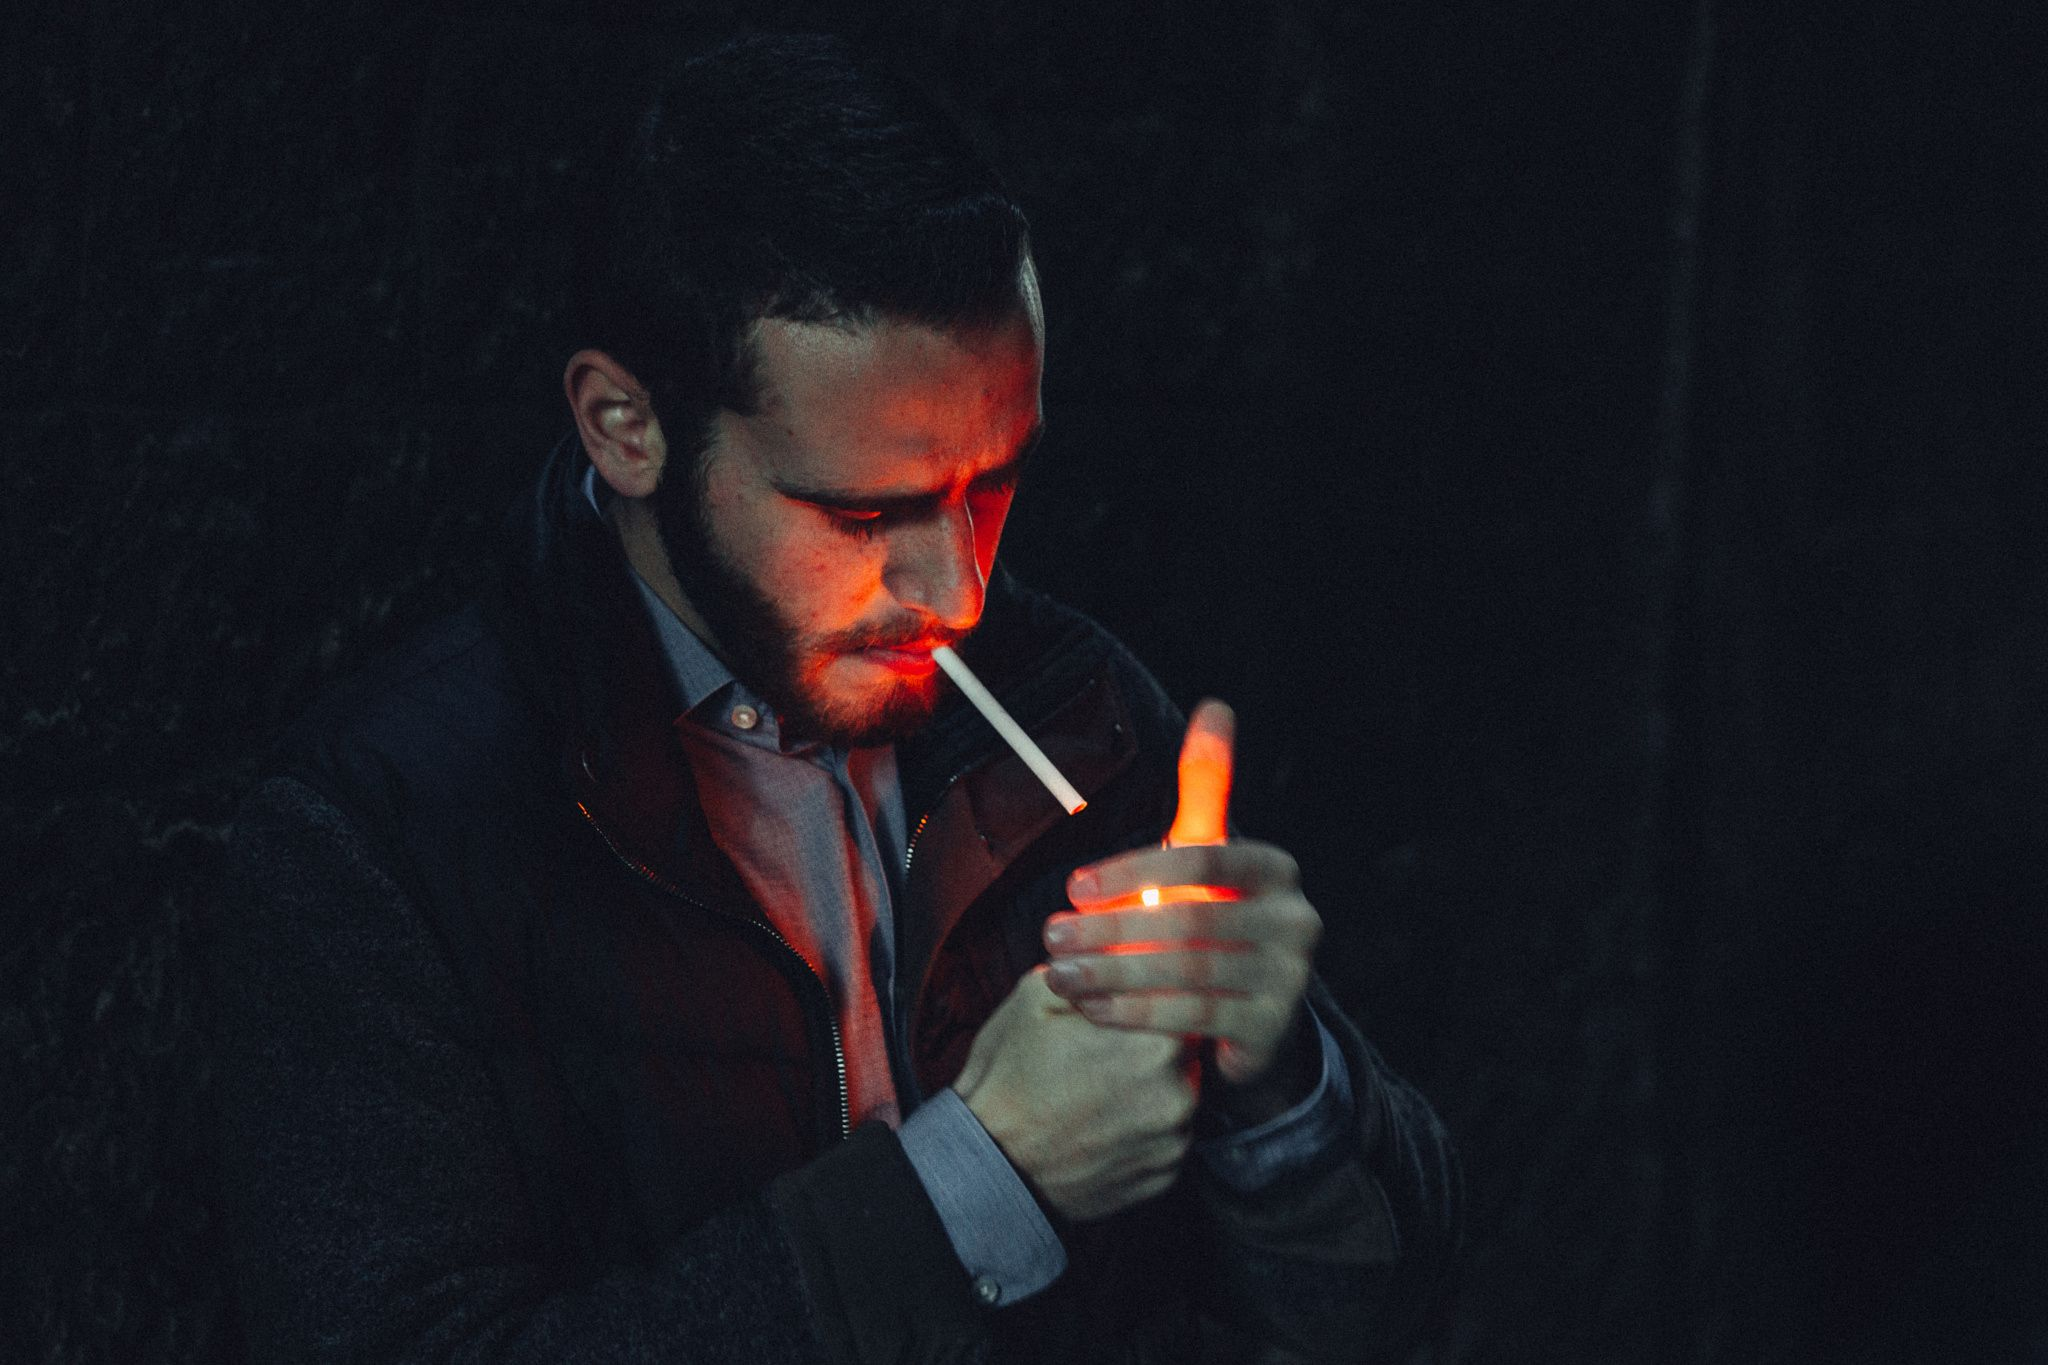 Playing in the darkness with a lighter